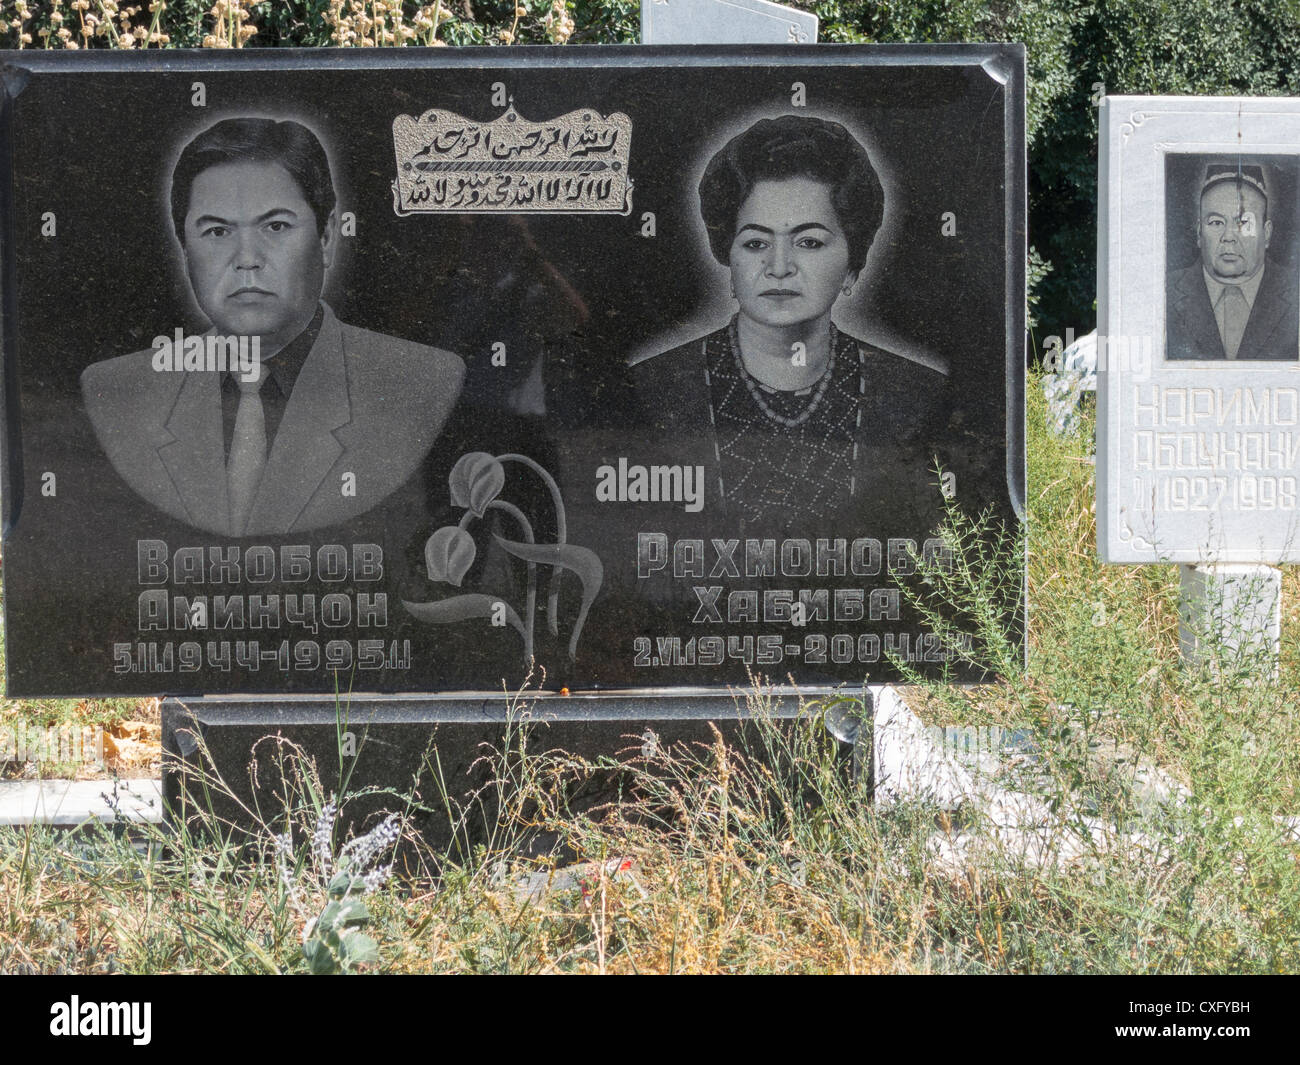 tombstone with photographic reproduction of deceased, Samarkand, Uzbekistan - Stock Image